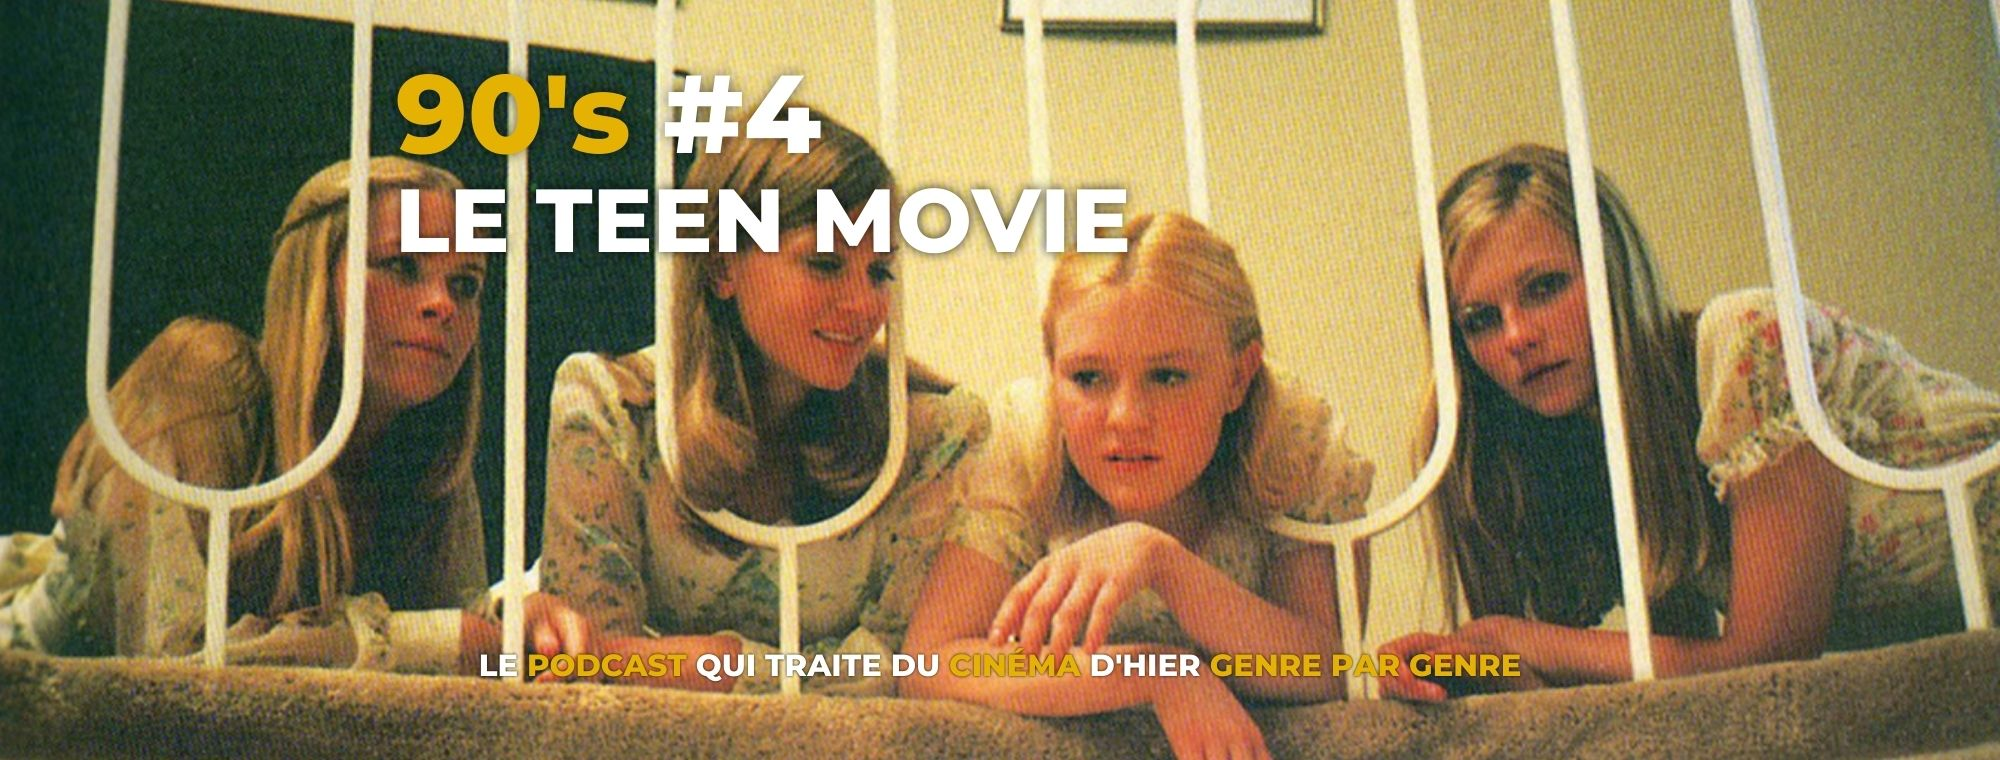 Parlons Péloches - 90's #4 Le teen movie